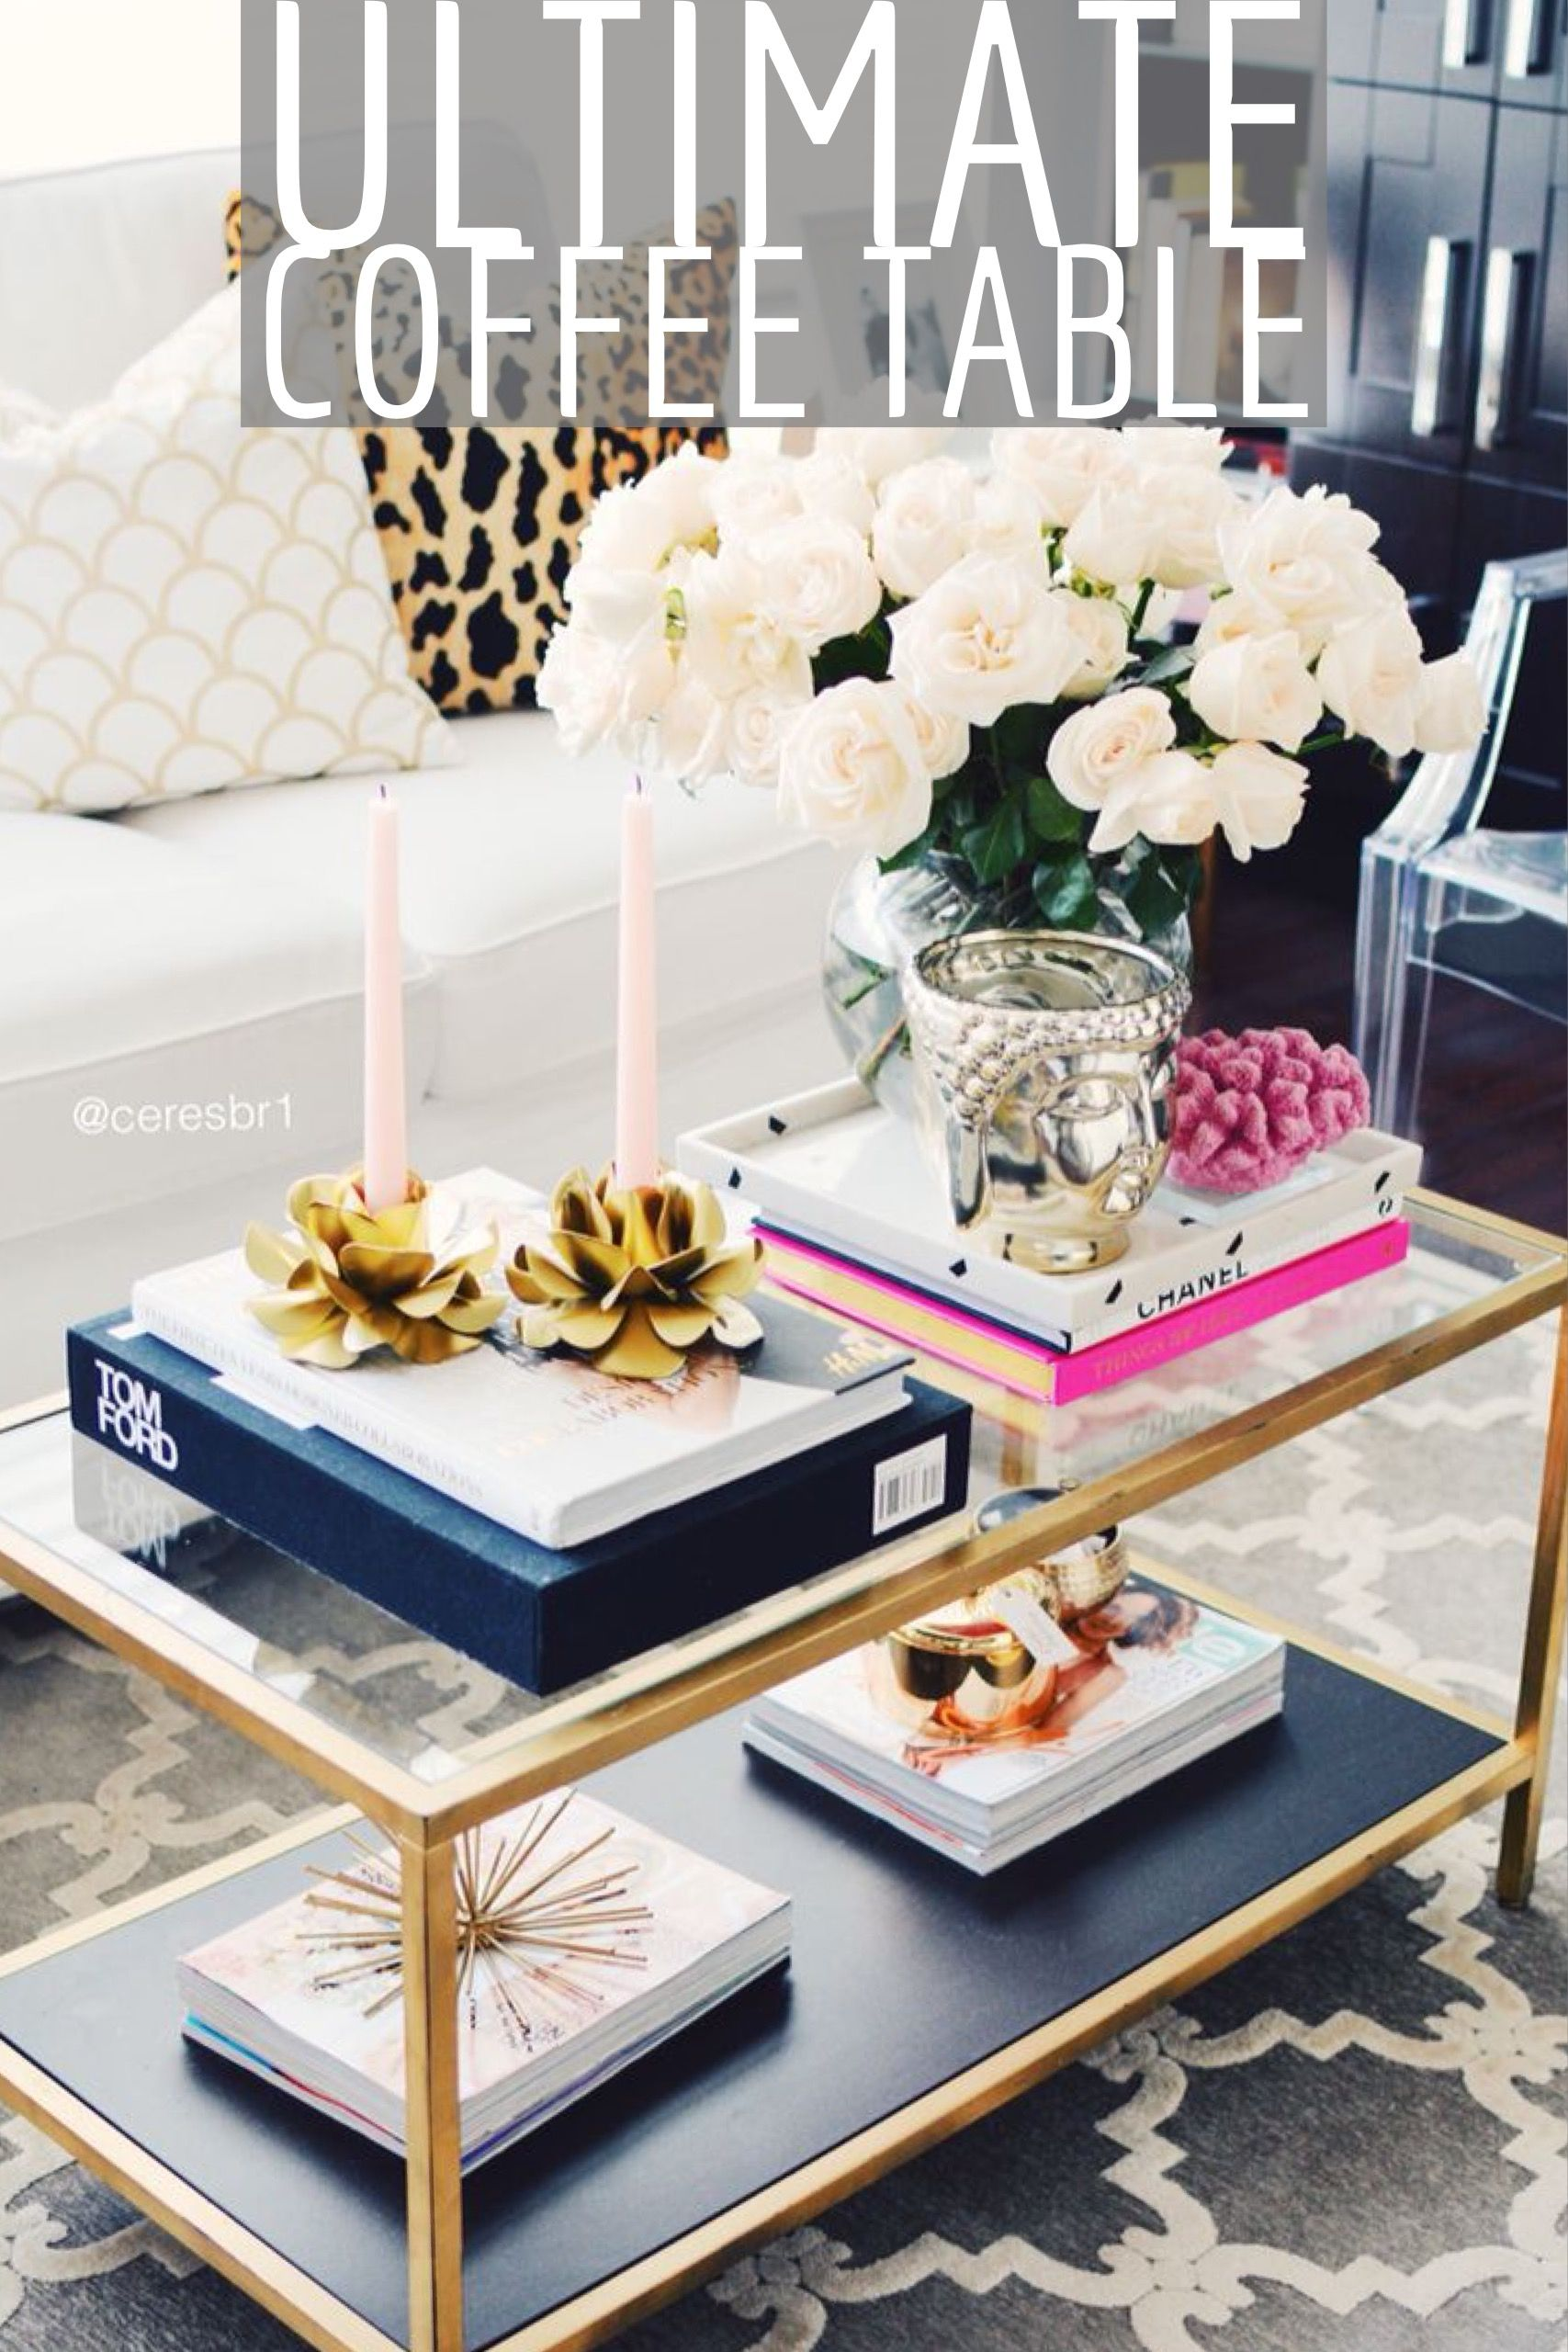 How To Design A Coffee Table With Candles Books Flowers And